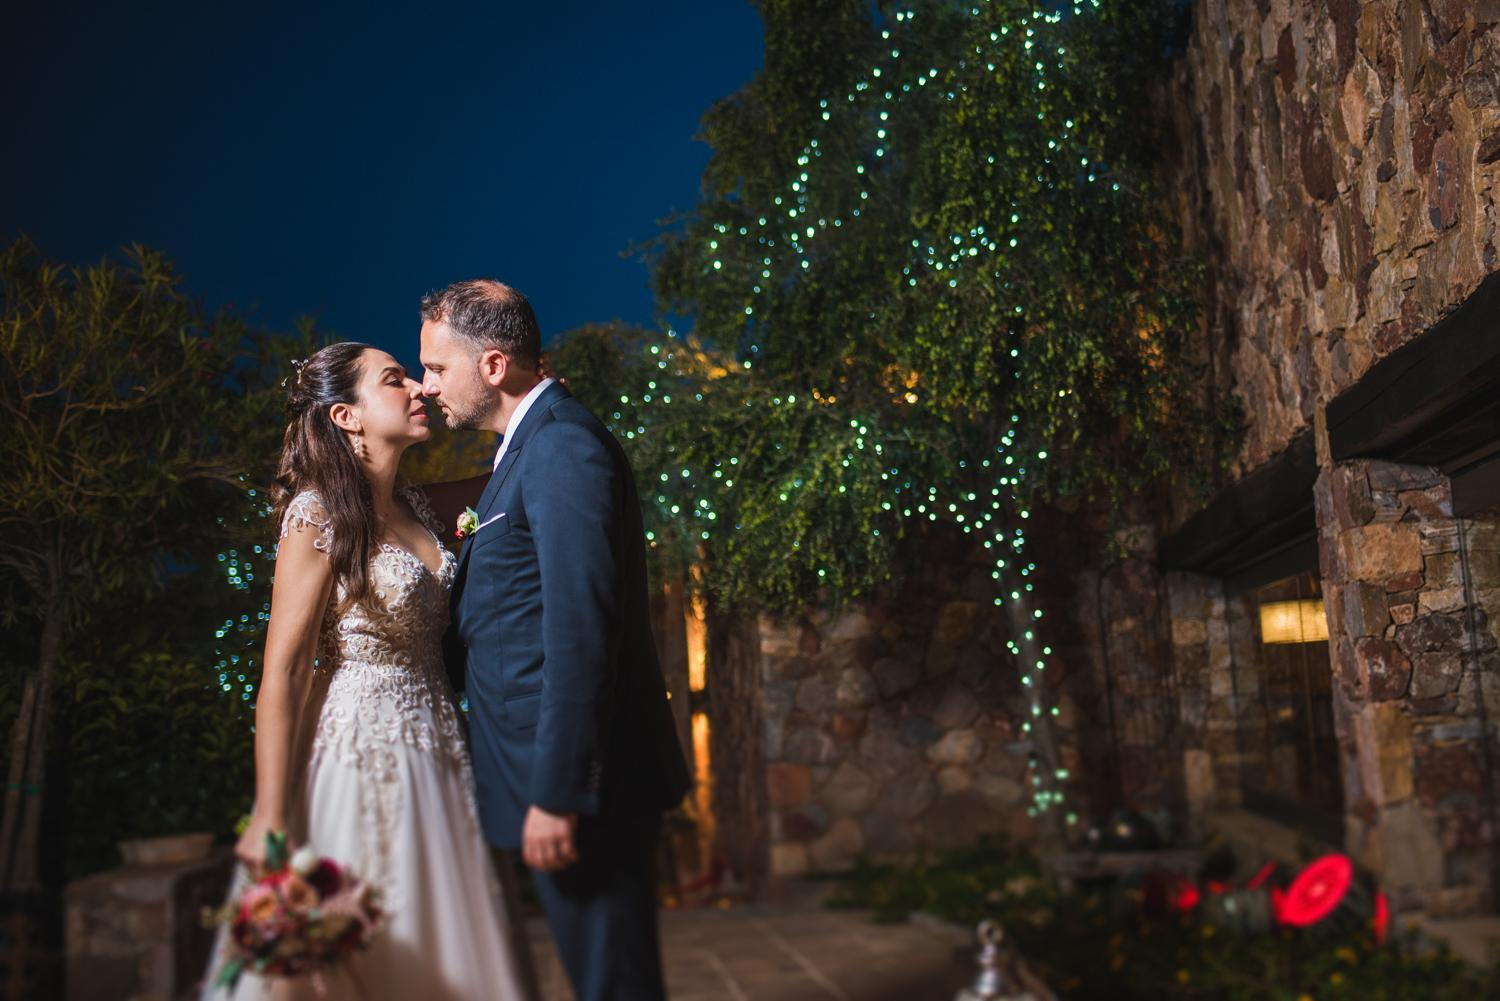 Marsala wedding in Greece's countryside